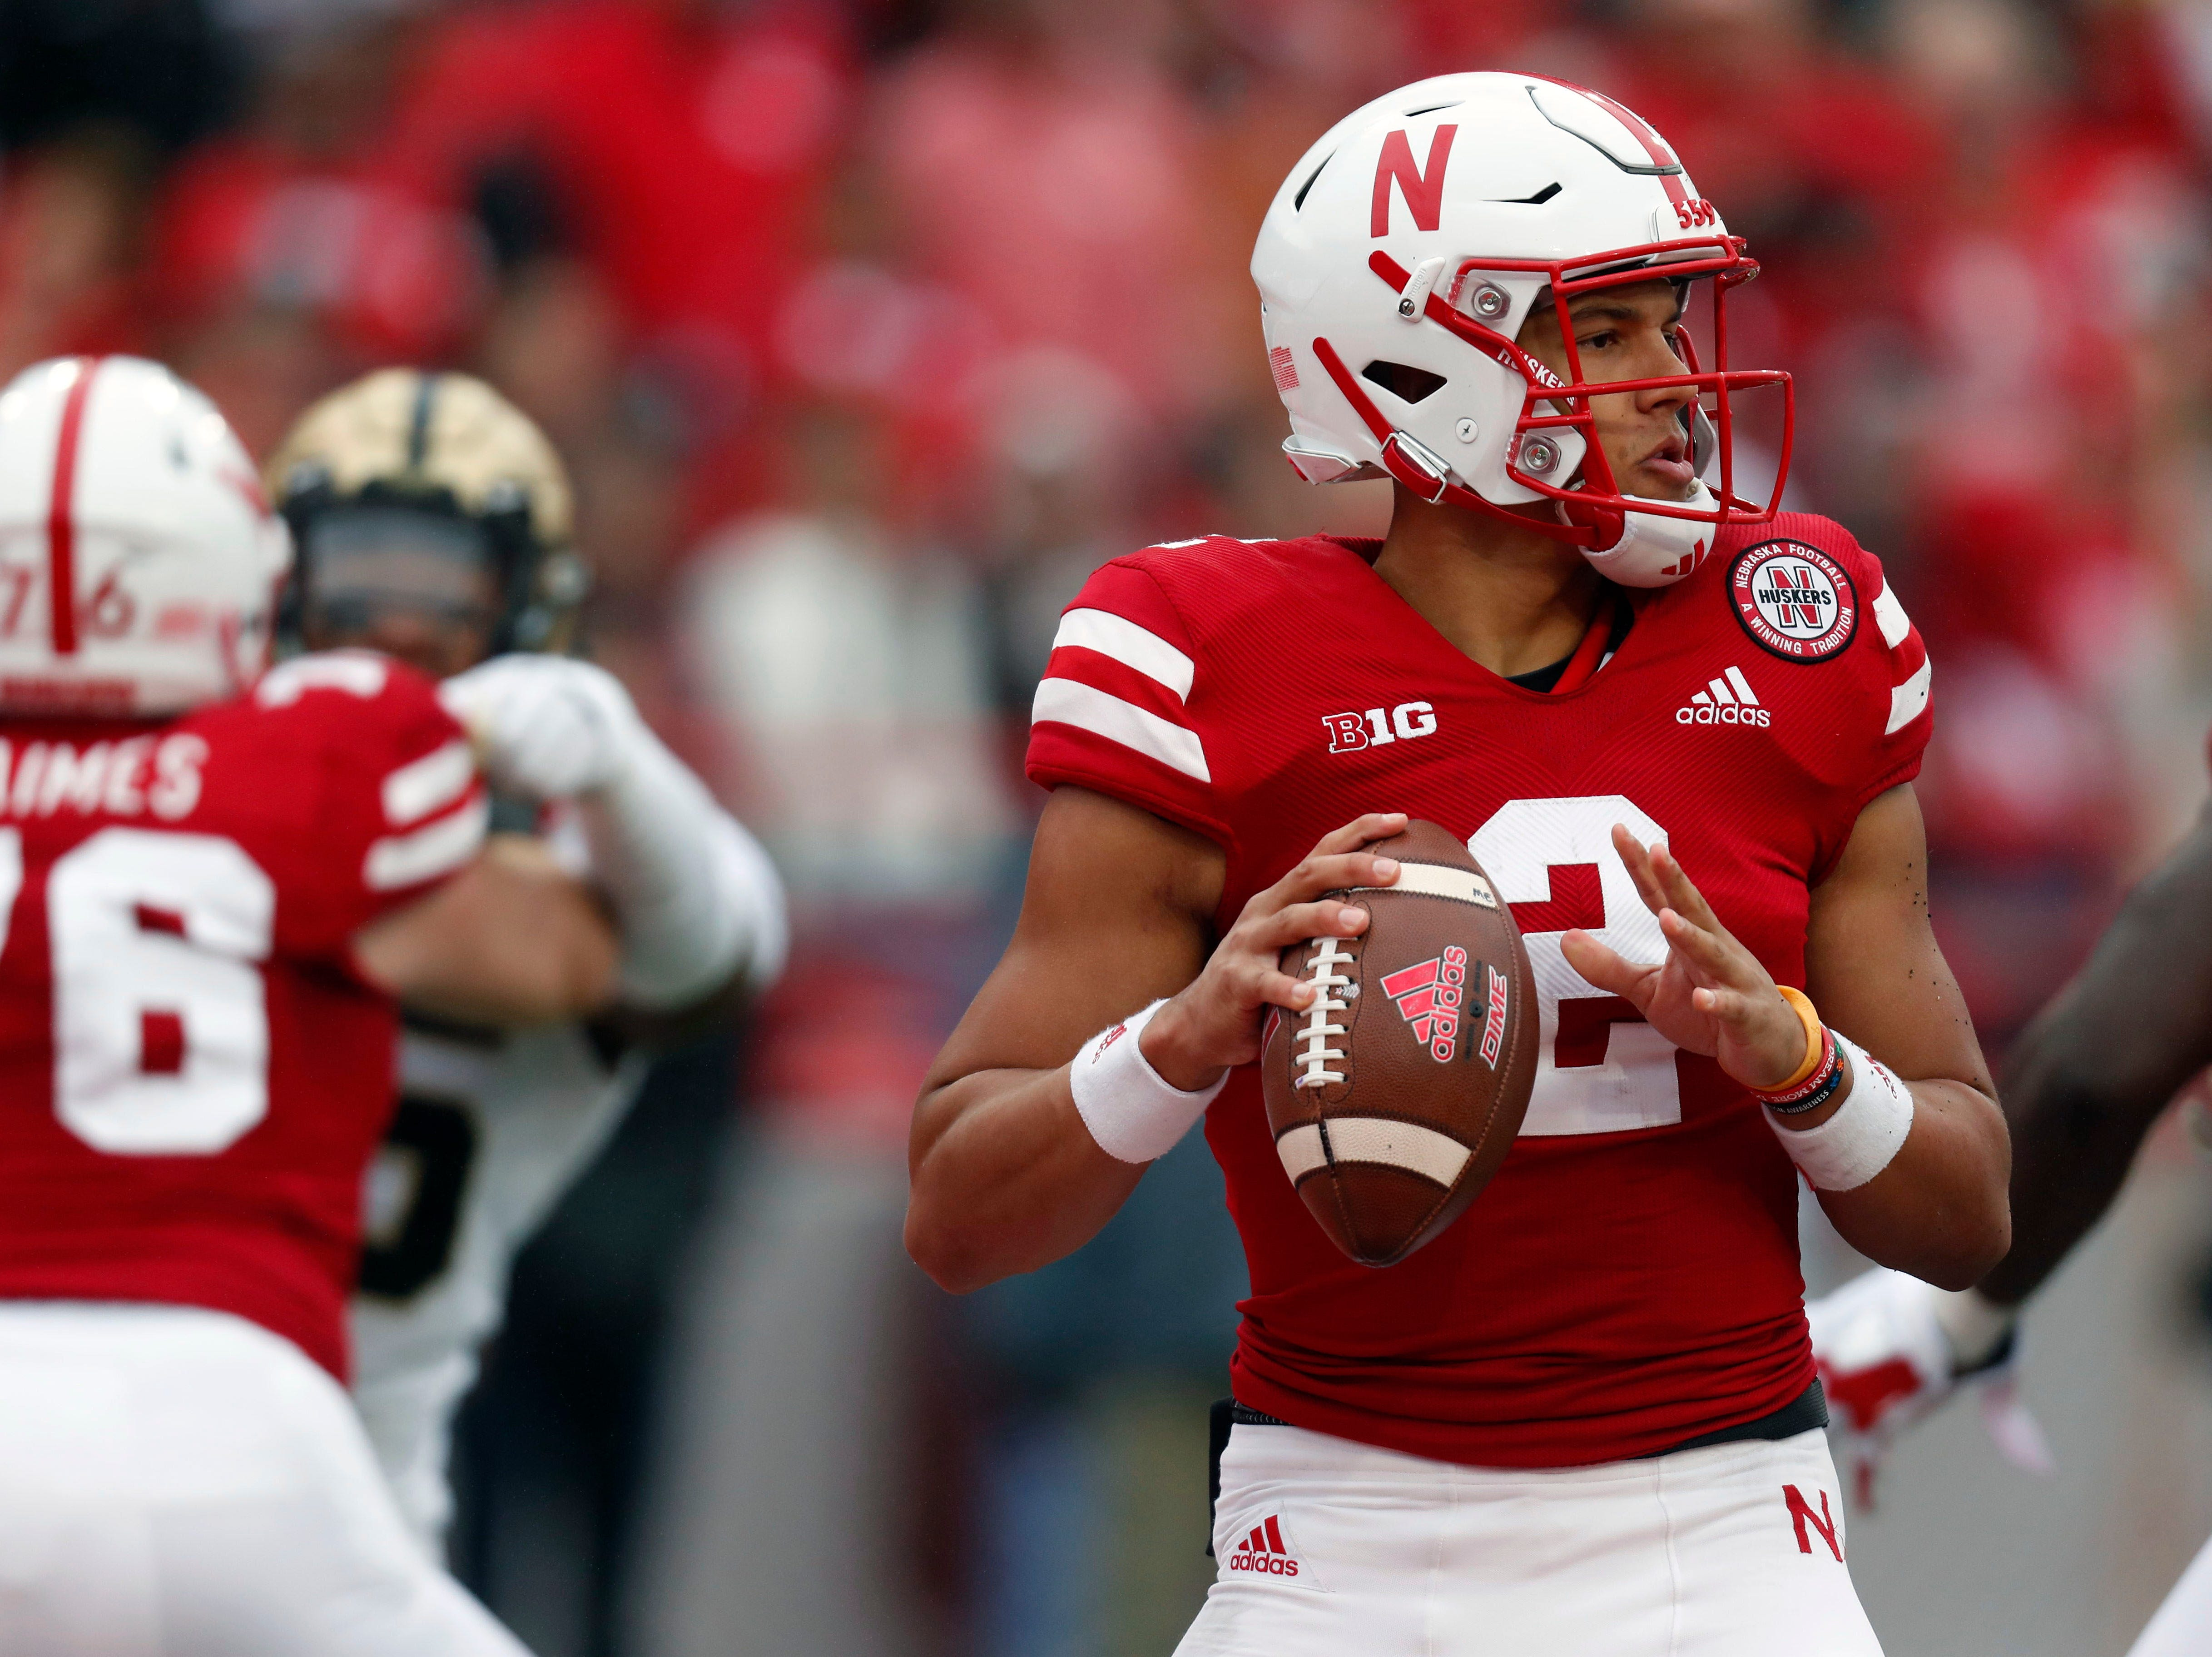 Sep 29, 2018; Lincoln, NE, USA; Nebraska Cornhuskers quarterback Adrian Martinez (2) looks to throw against the Purdue Boilermakers in the first half at Memorial Stadium. Mandatory Credit: Bruce Thorson-USA TODAY Sports